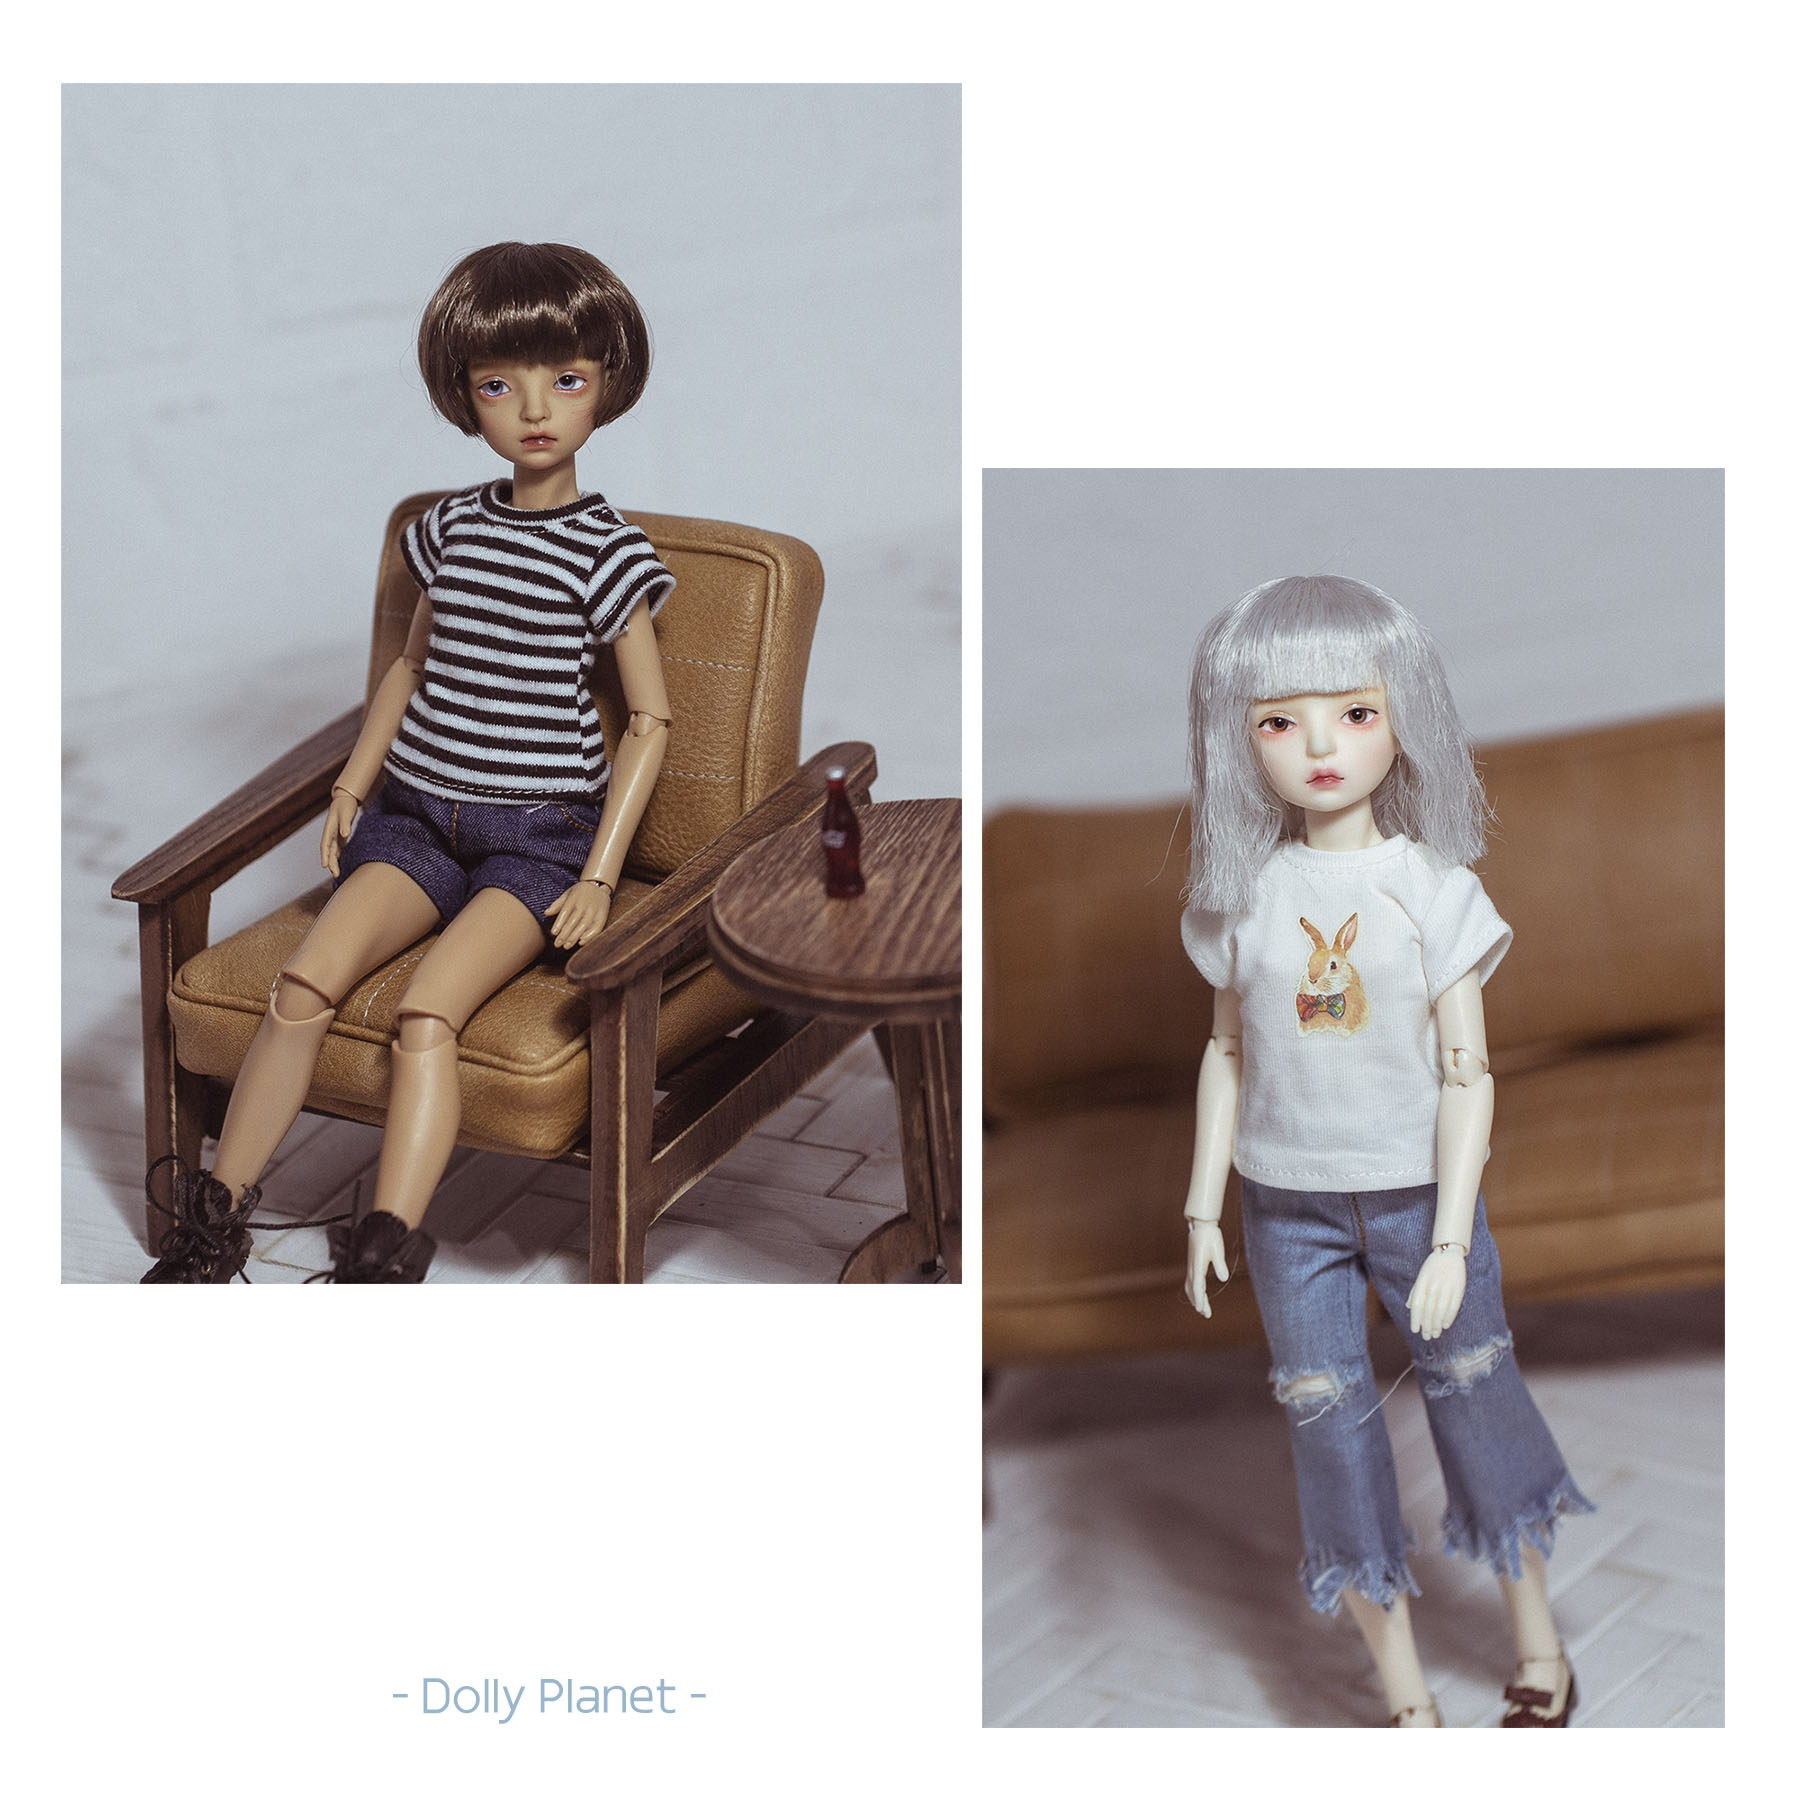 BO-07 Doll Outfit Tshirt Blythe/OB24/Licca